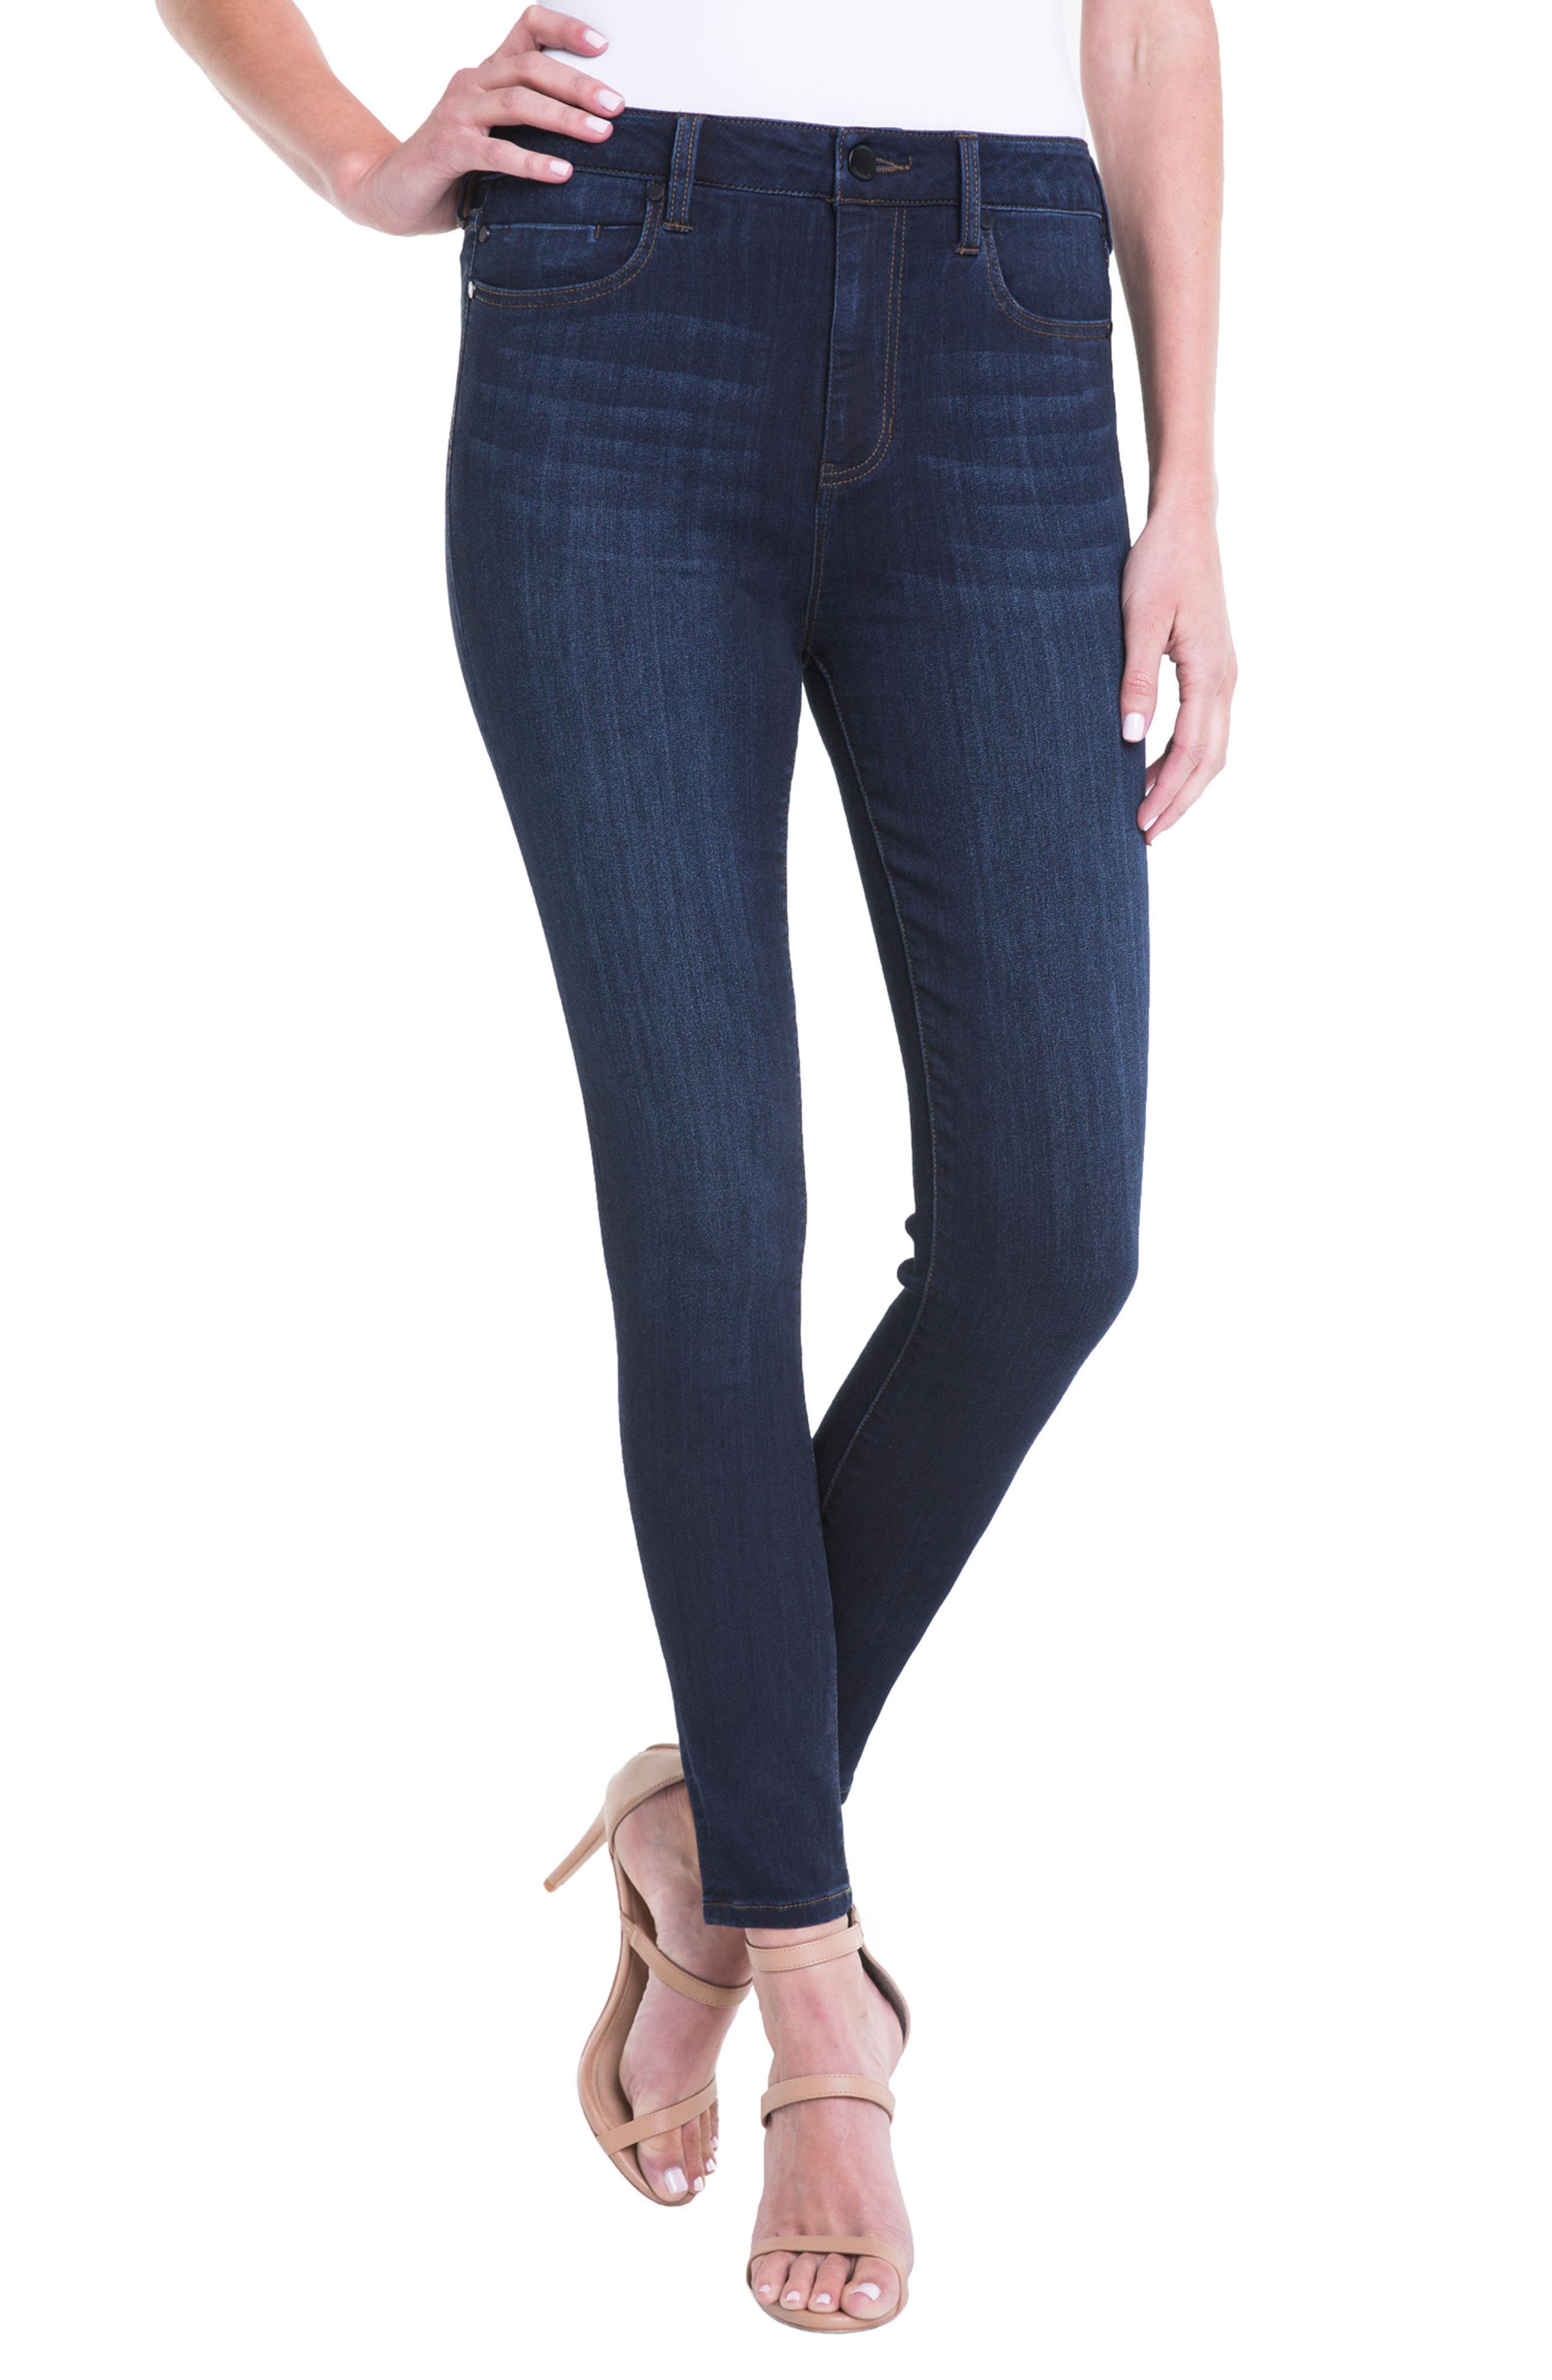 Jeans Company Bridget High Waist Skinny Jeans,                         Main,                         color, DUNMORE DARK